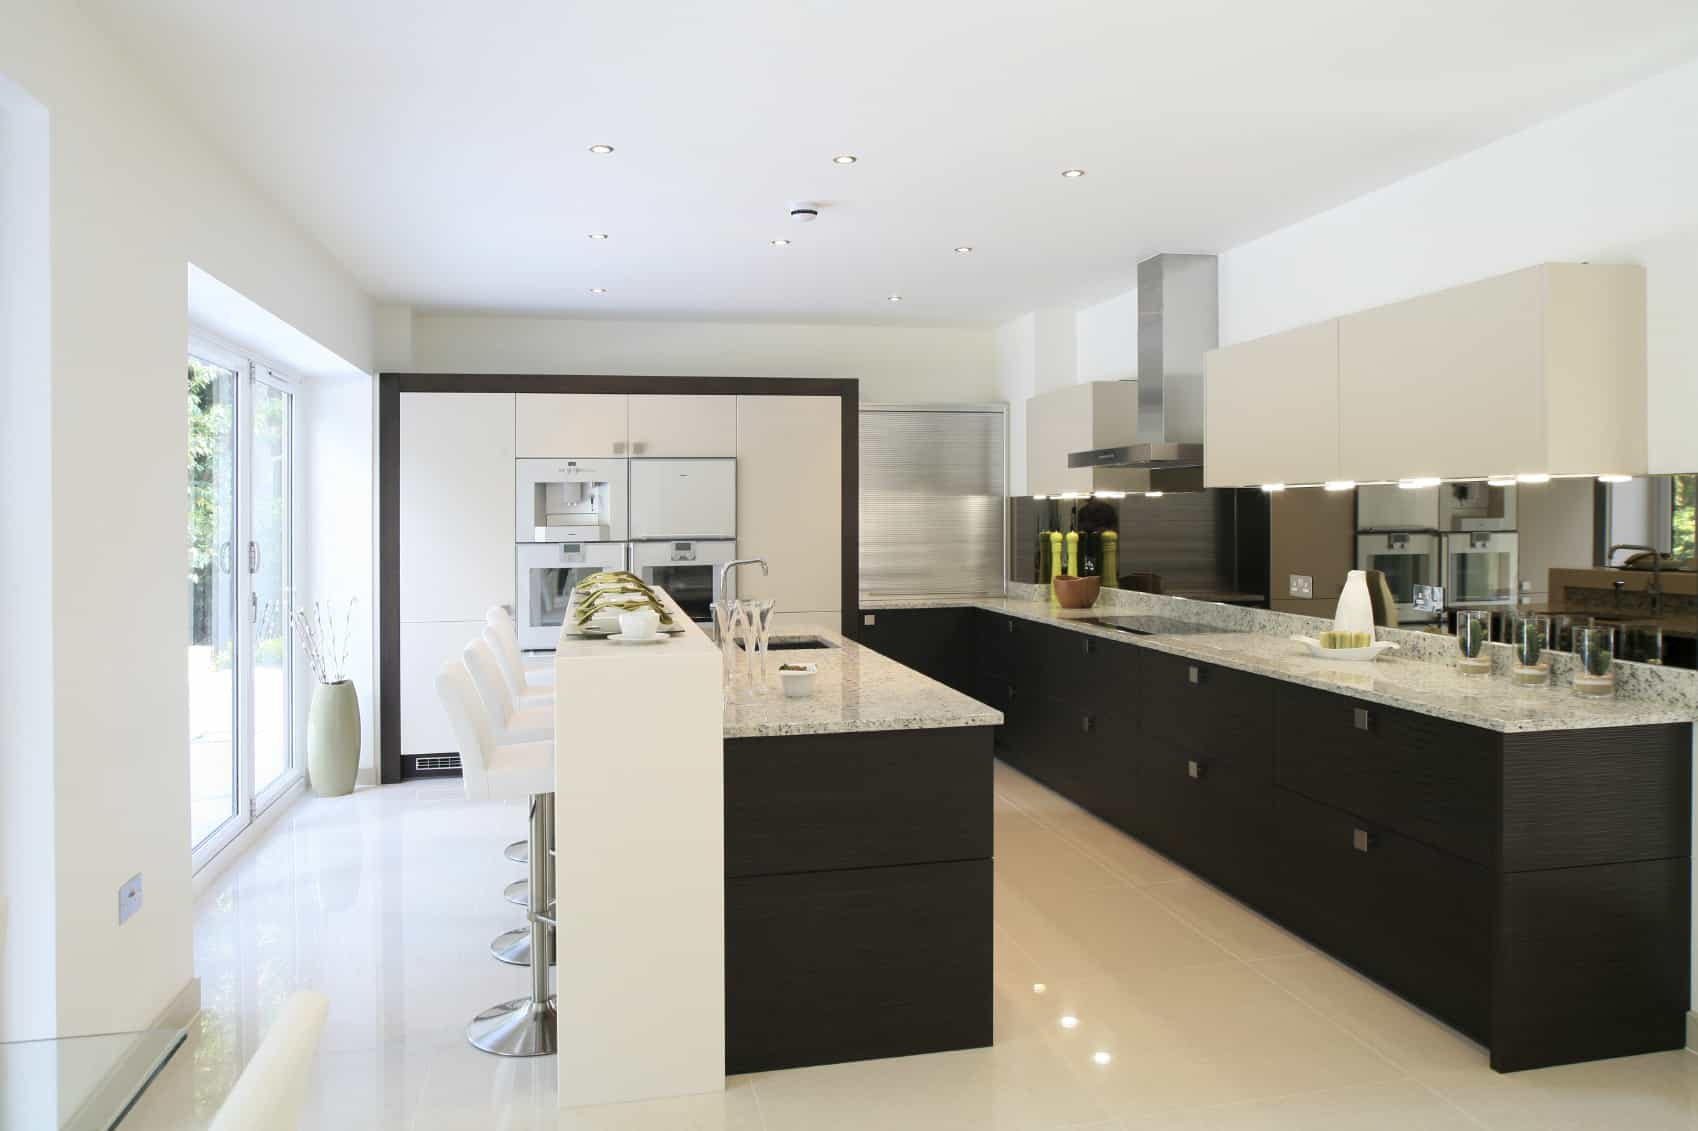 Luxury Kitchen With White Appliances And A Breakfast Bar. Part 92